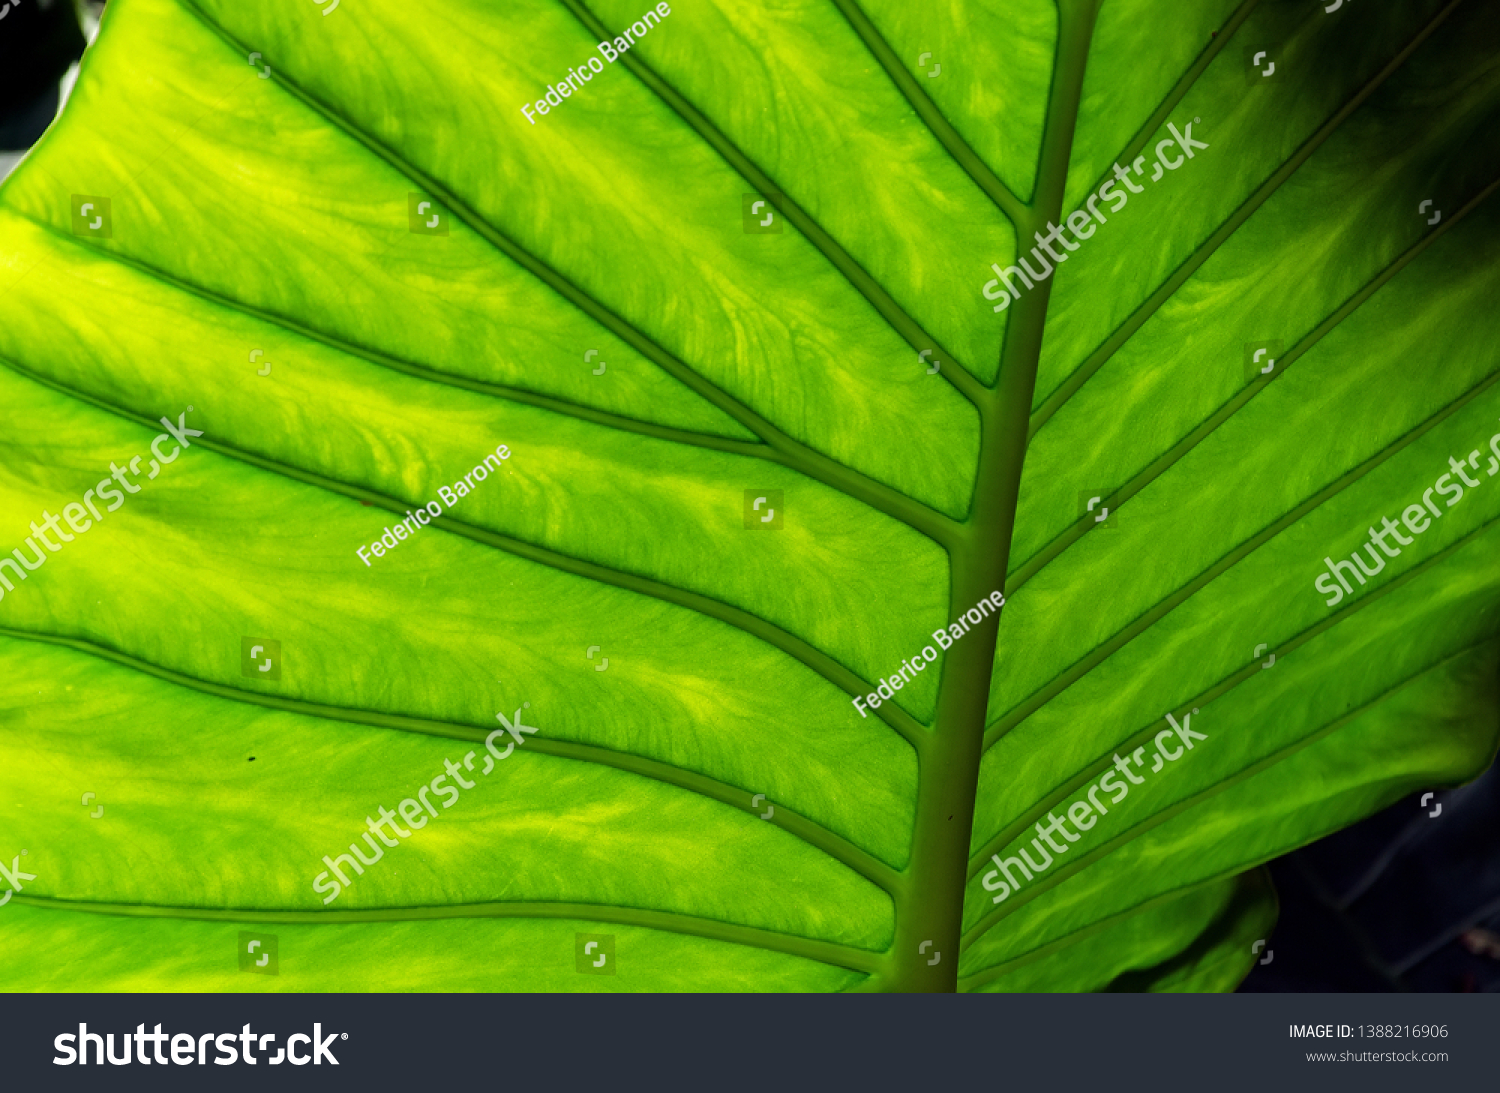 stock-photo-close-up-of-a-beautiful-and-